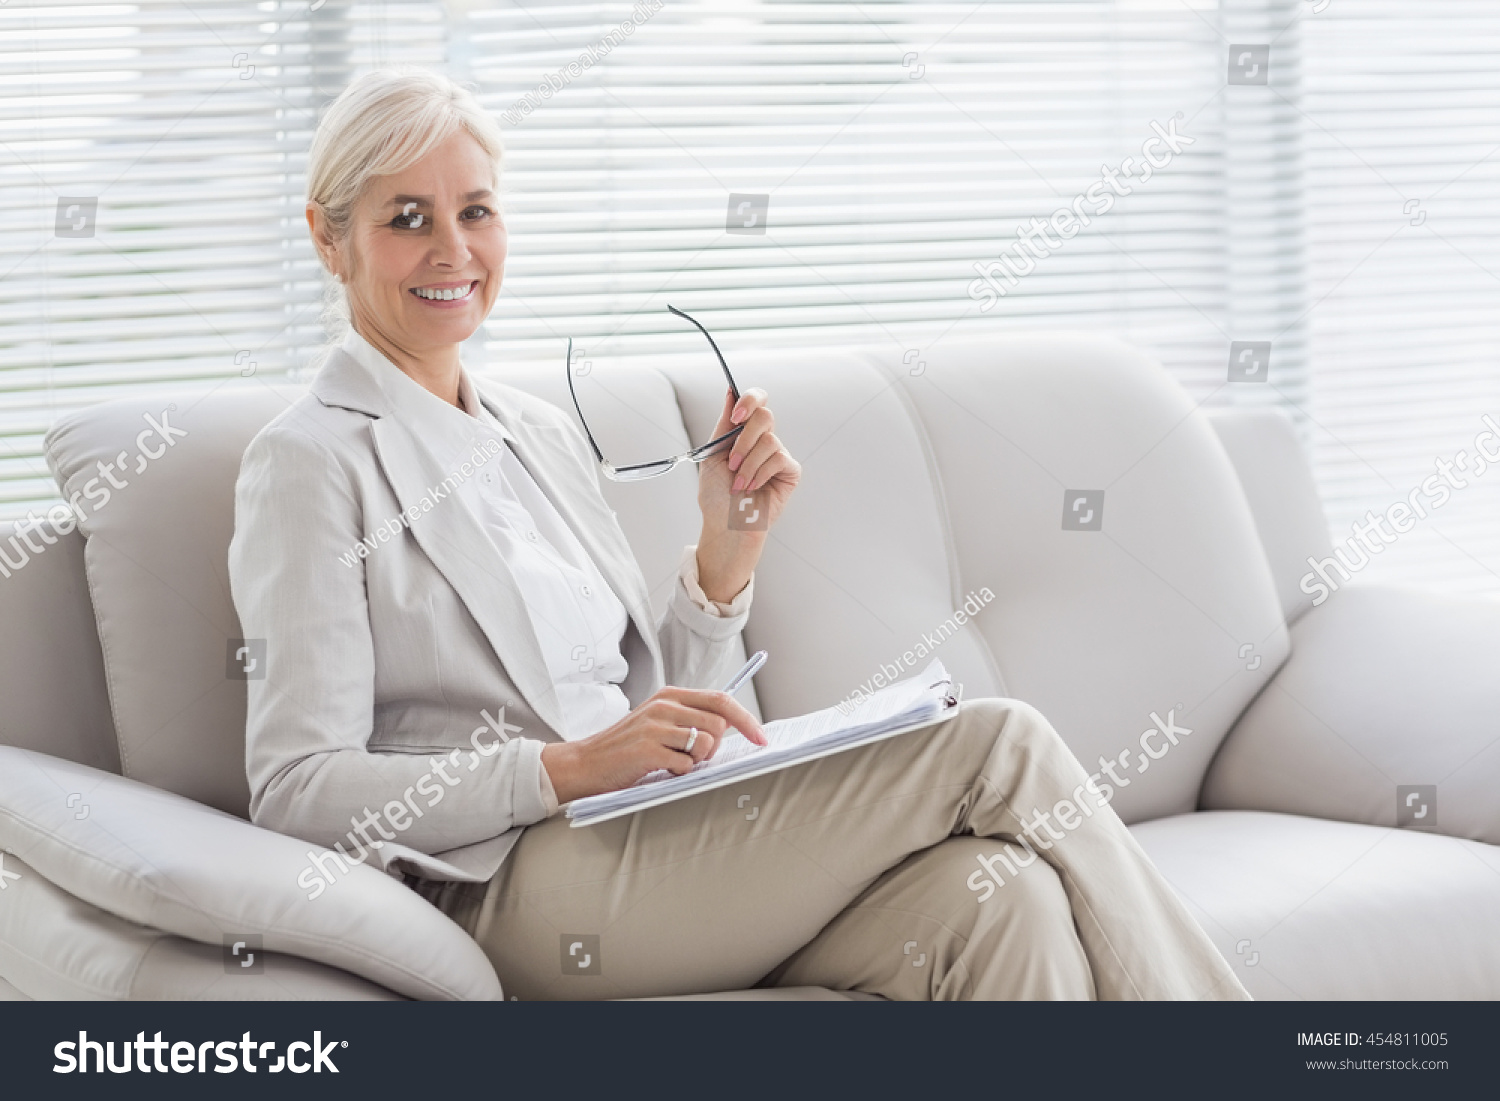 """professional women opting out psy 375 Read all of the posts by myhomeworkkspot on myhomeworkkspot  psy 375 life span human development /complete course  are professional women """"opting out"""" of ."""